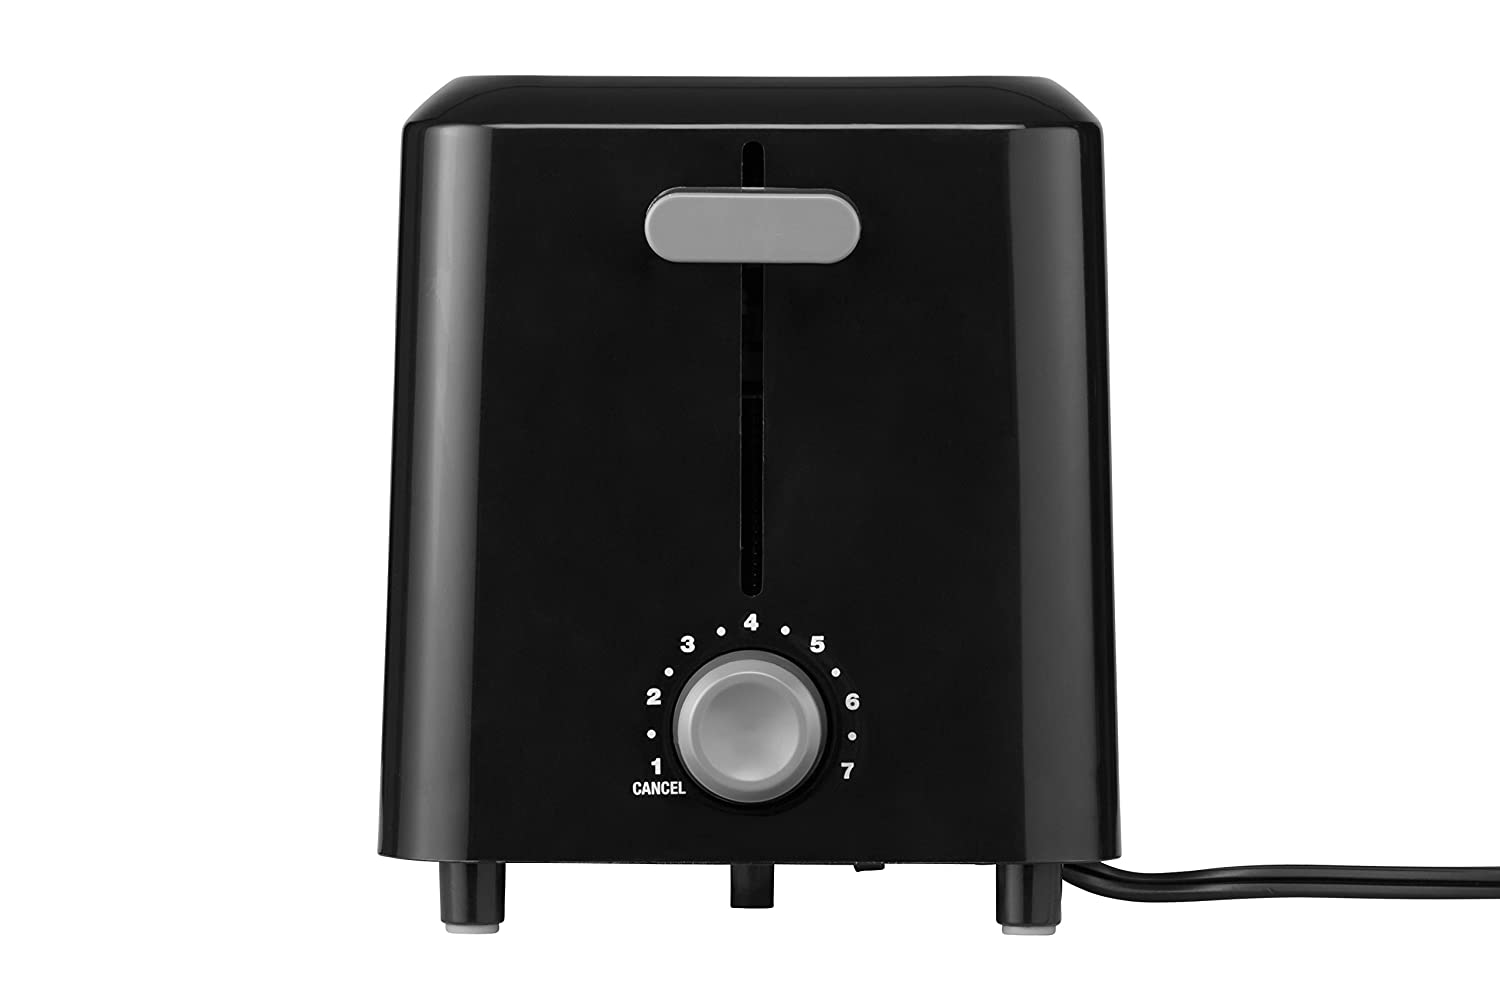 c7f4c8fba528 Amazon.com  Courant CTP-2701K Cool Touch 2-Slice Toaster